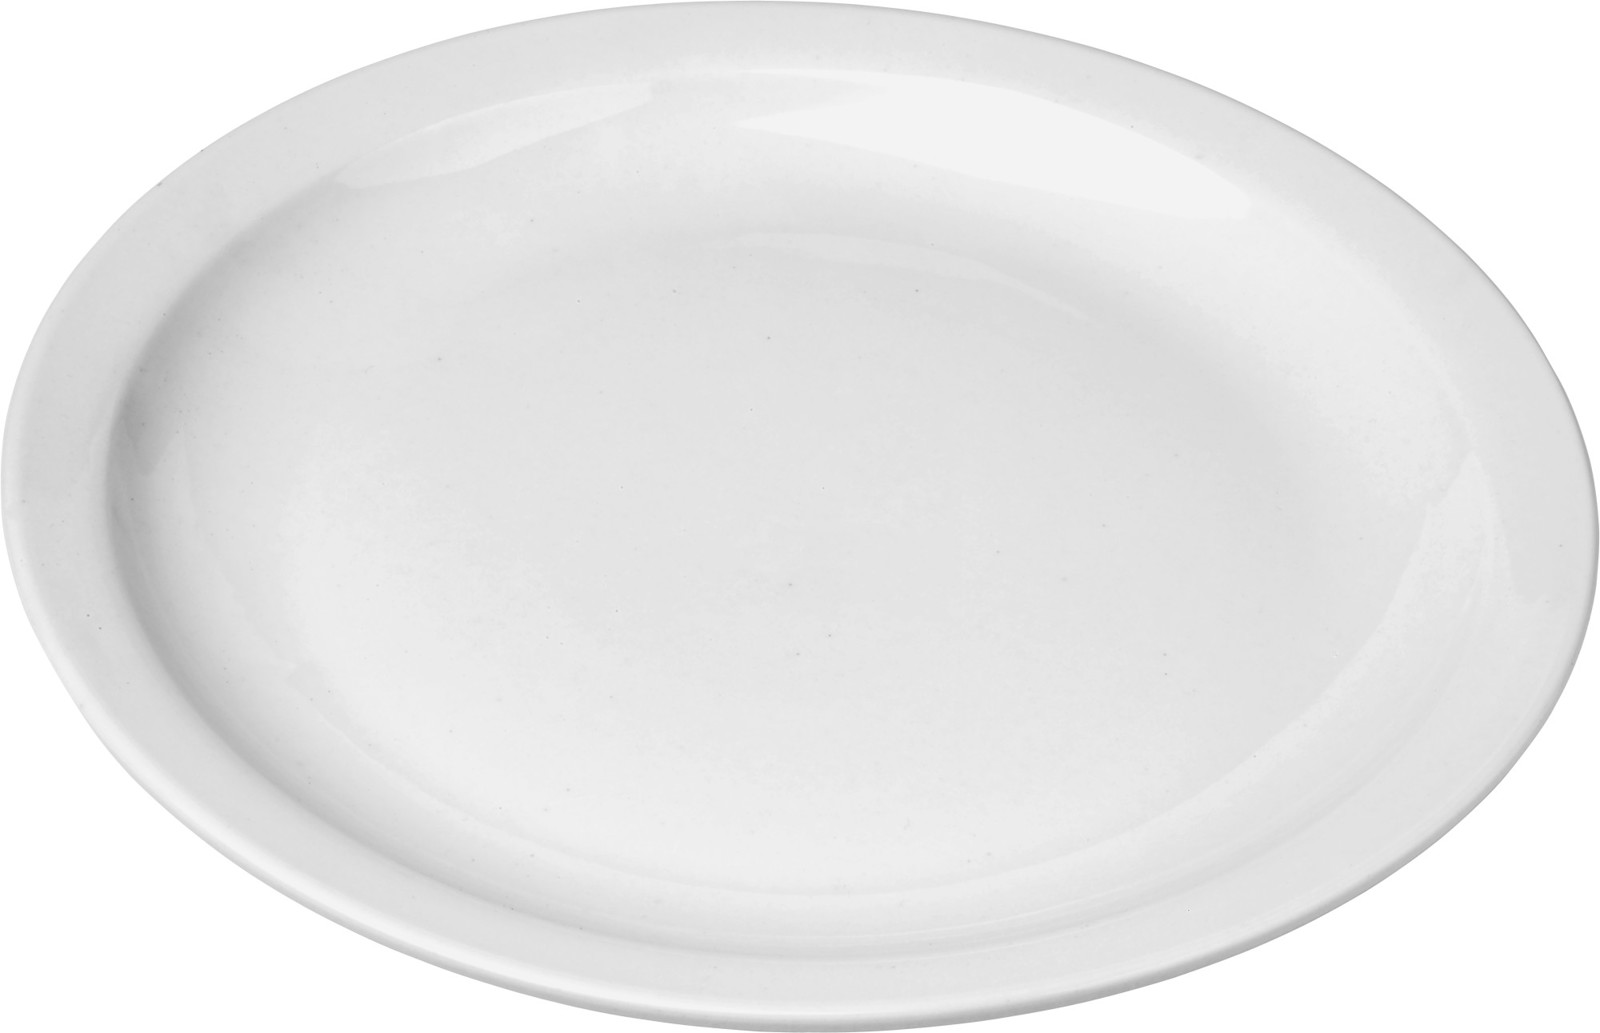 Porcelain plate with a diameter of 30 cm